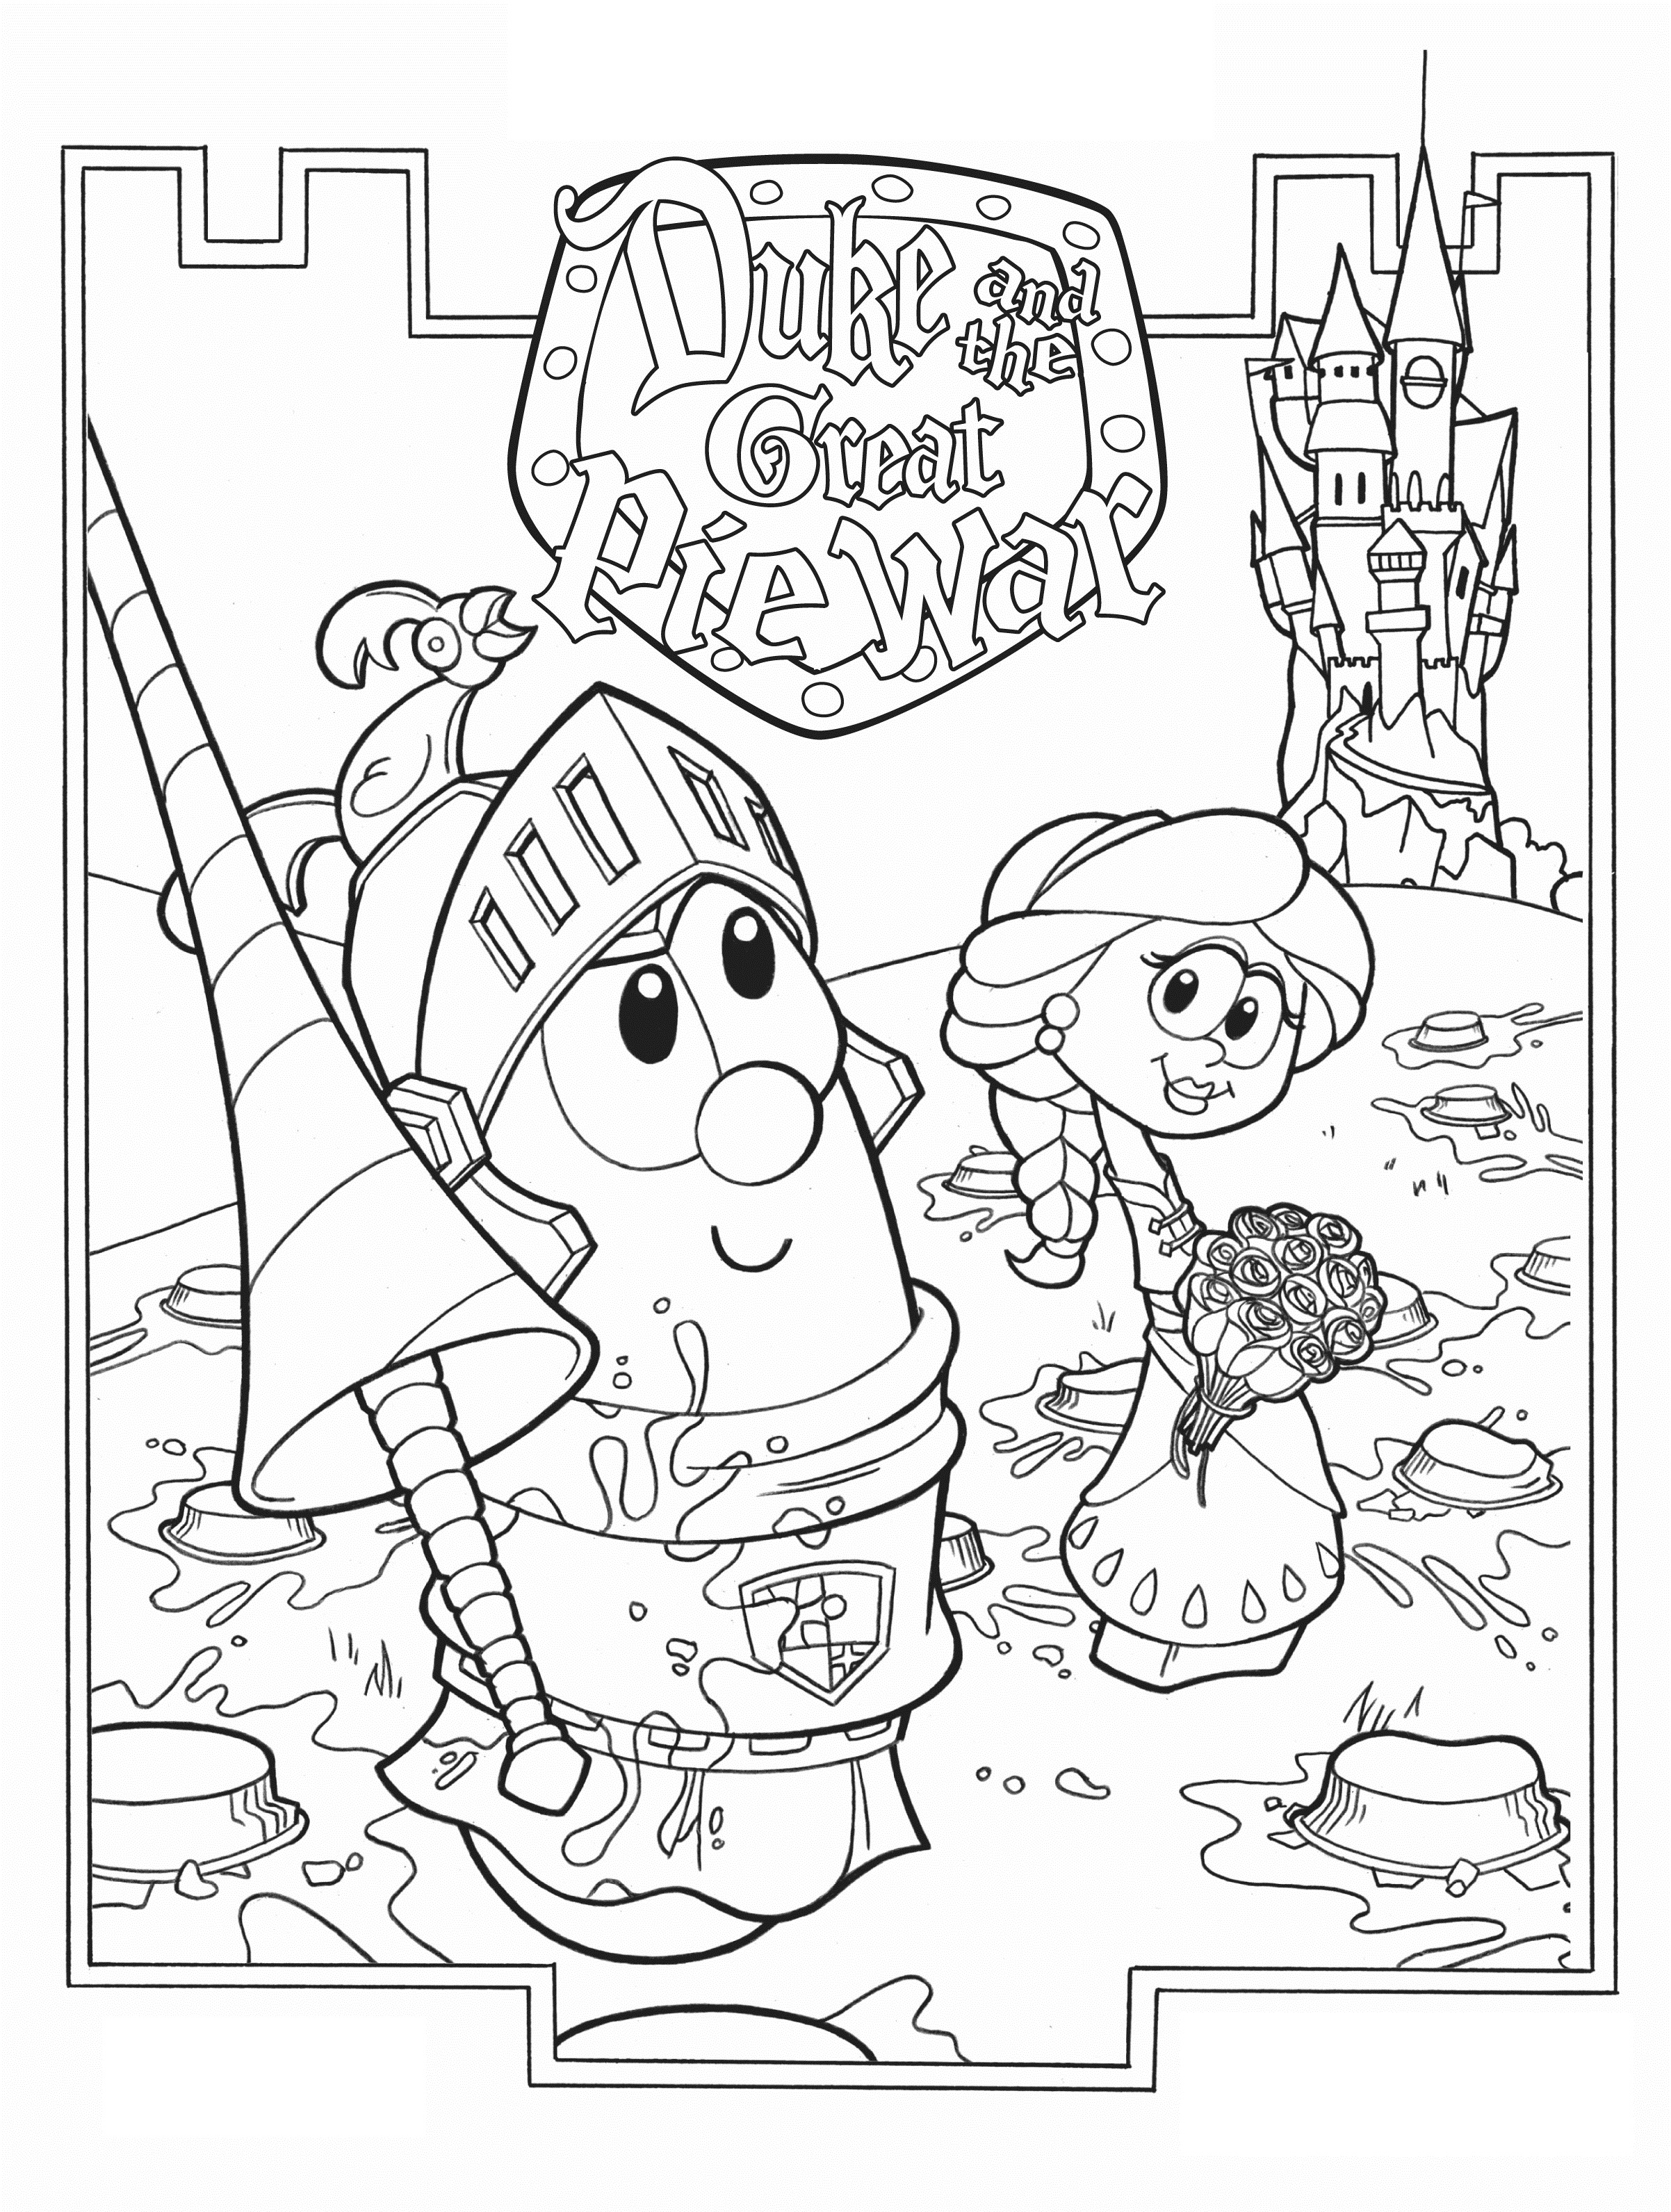 1000 Images About Community Group Kids On Pinterest Veggie Tales Colouring Pages